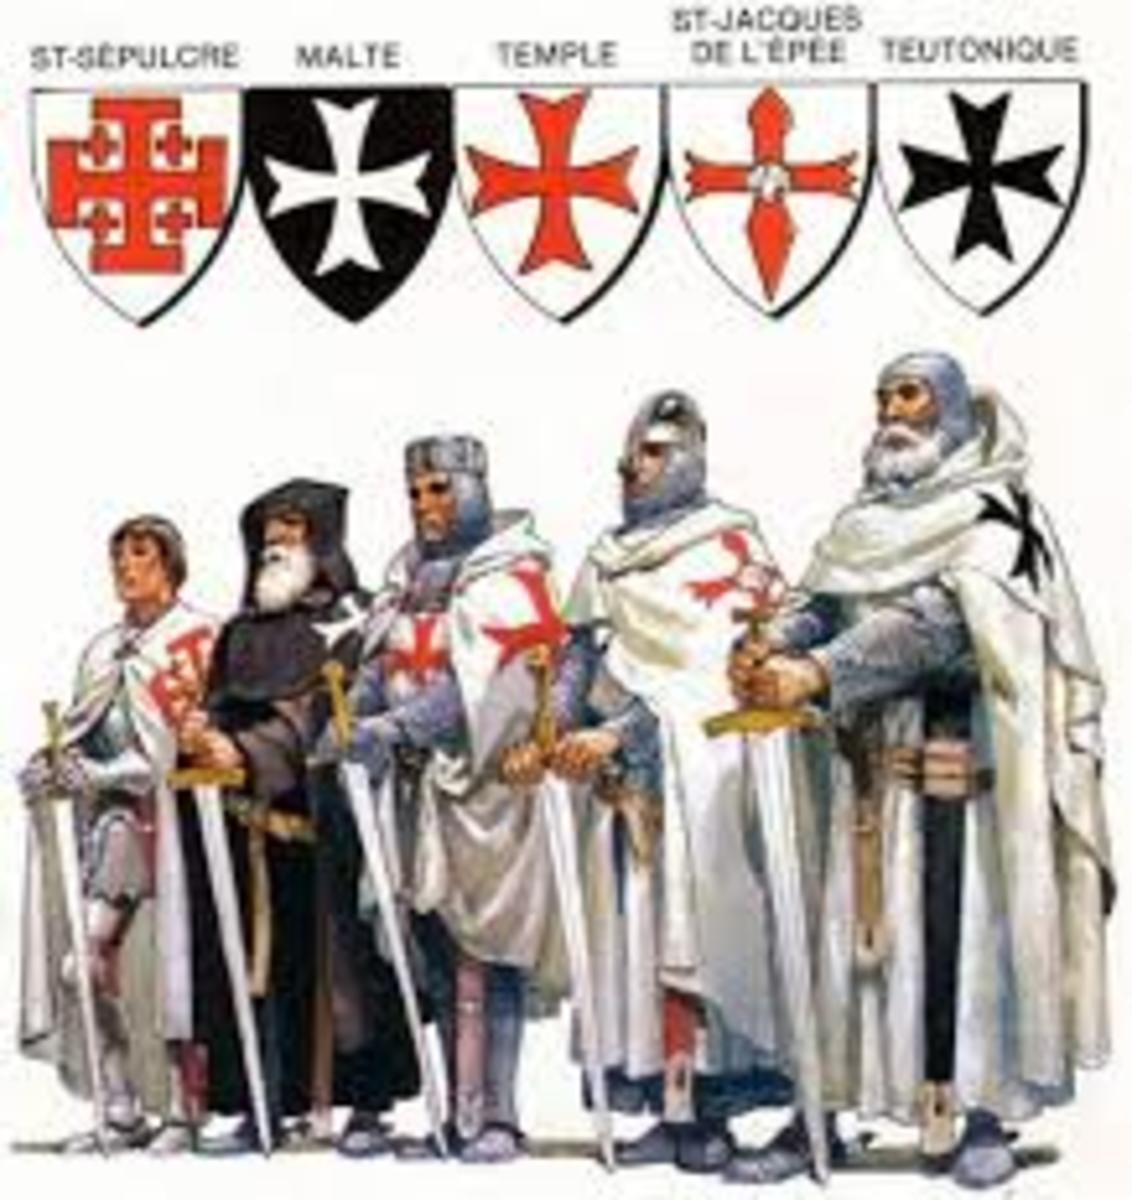 Knights Templar and Knights Hospitaller were the leading monastic knights during the medieval age.